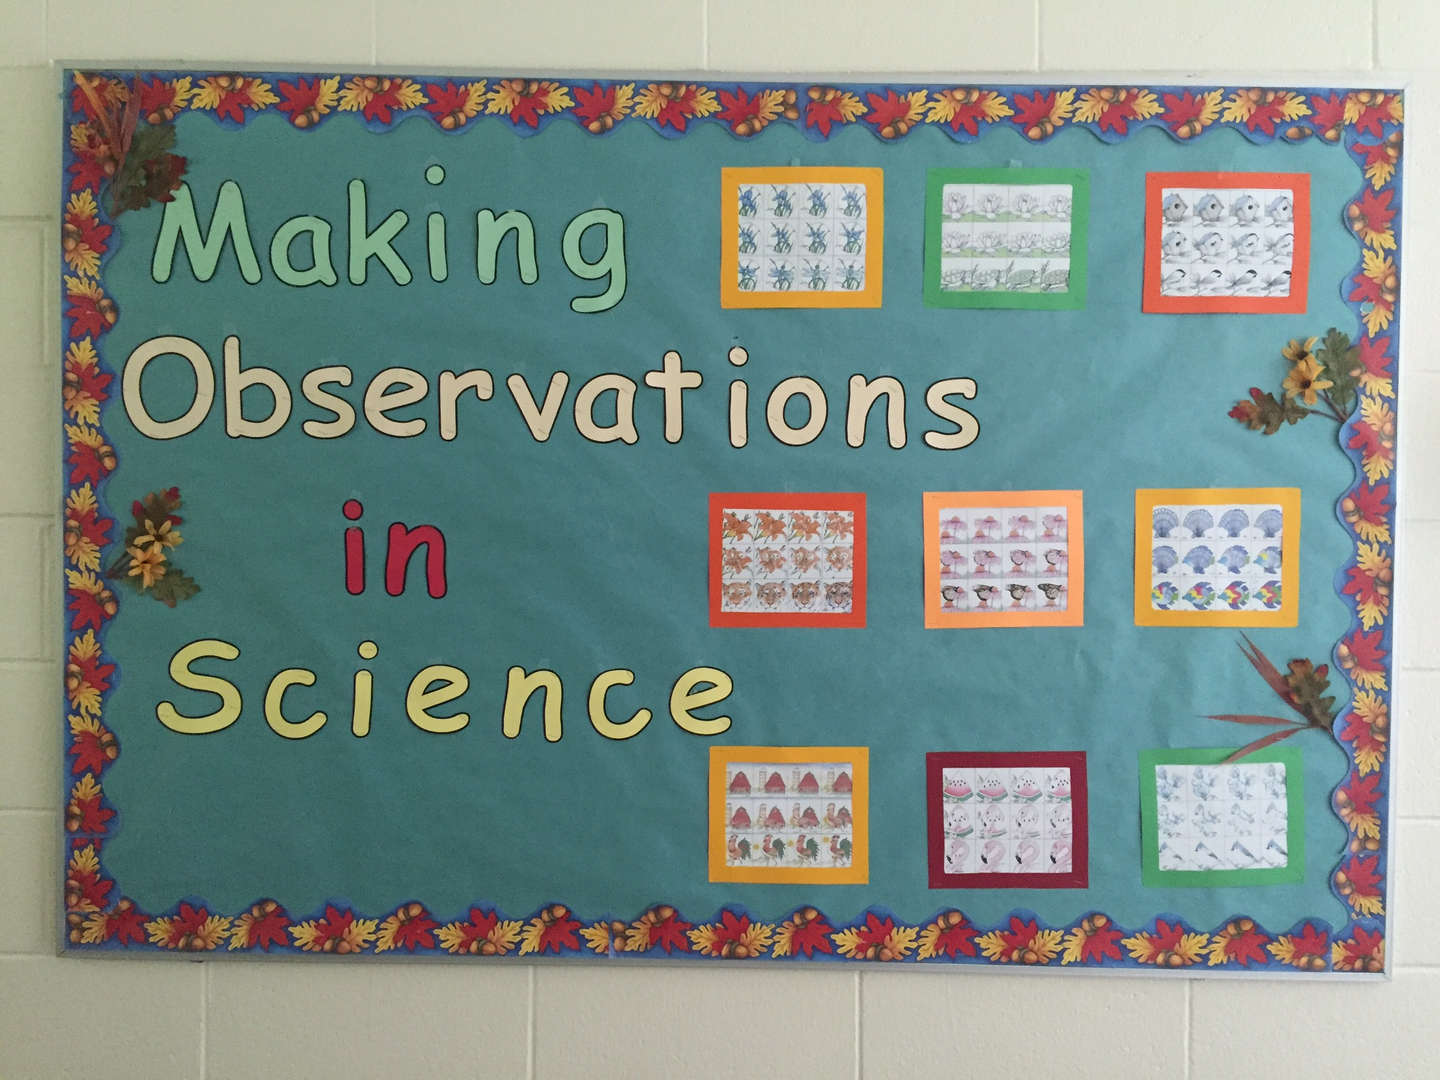 Making observations in Science